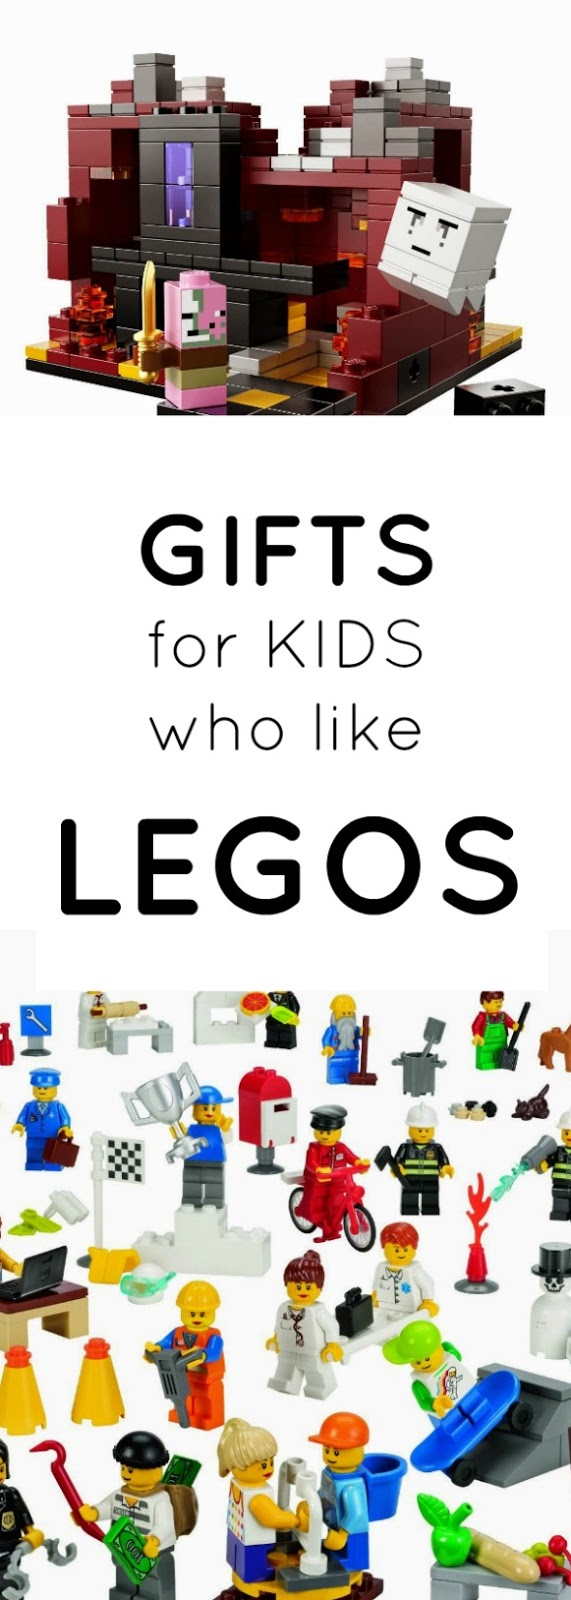 Gifts for kids who like legos boys girls